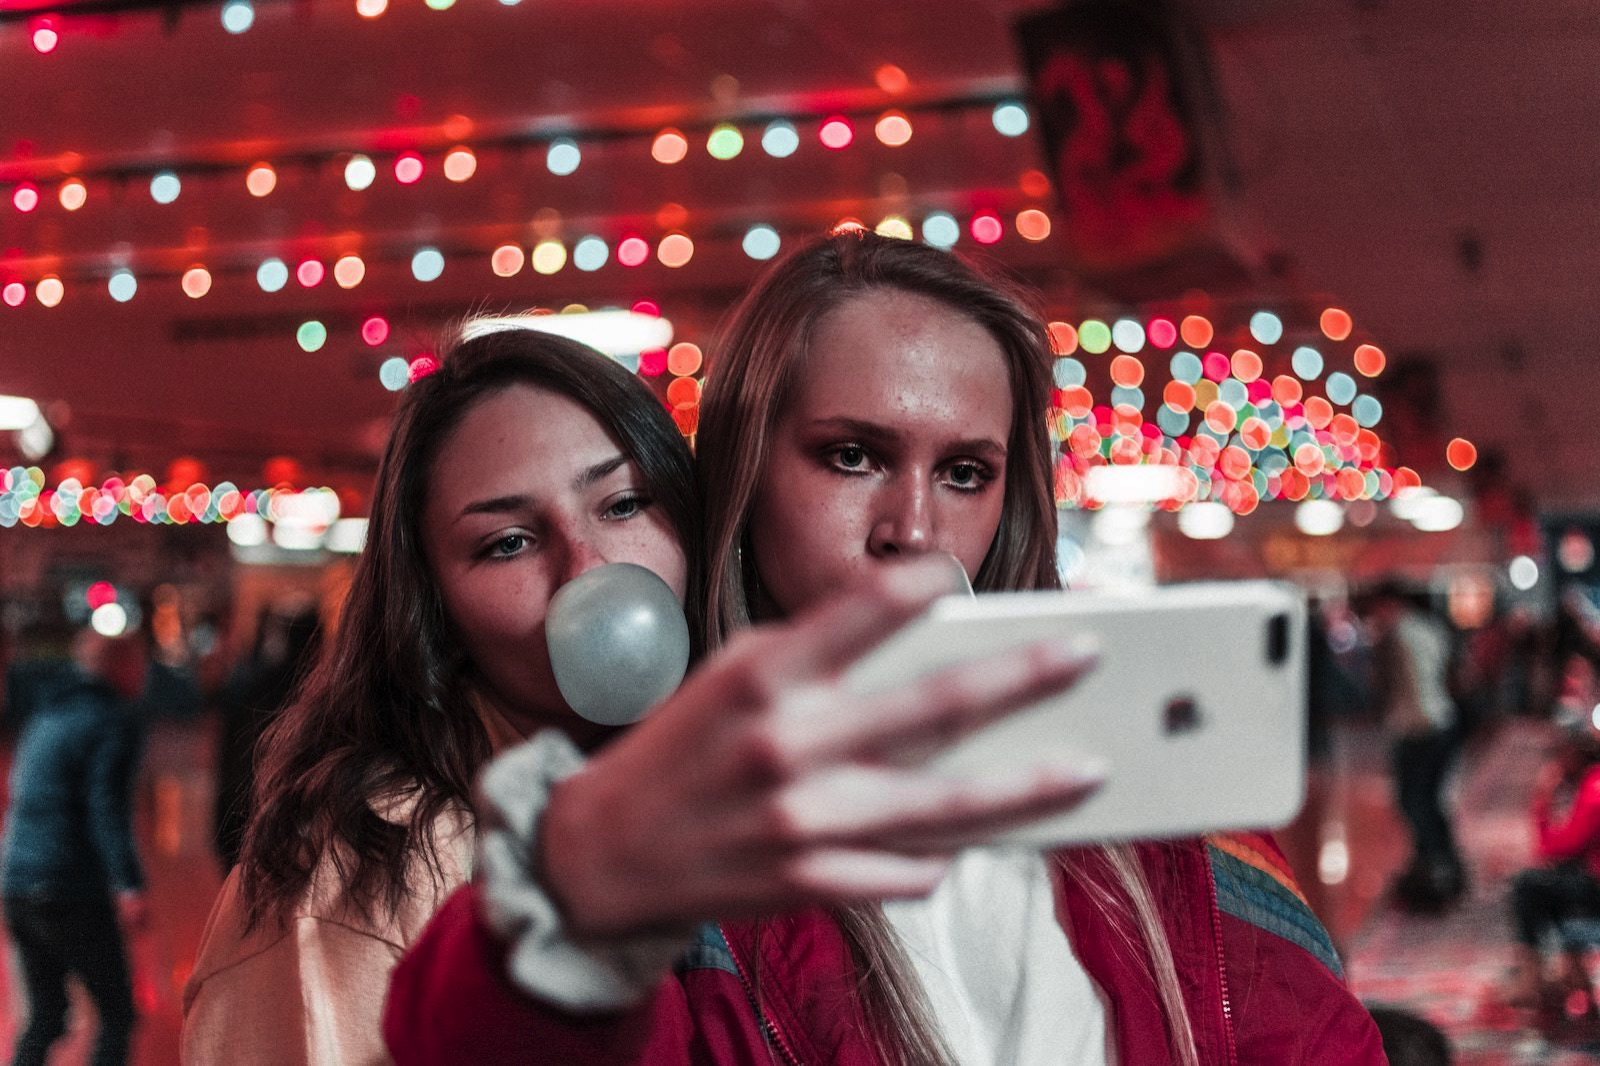 Ben weber 547197 unsplash taking selfies with iphone